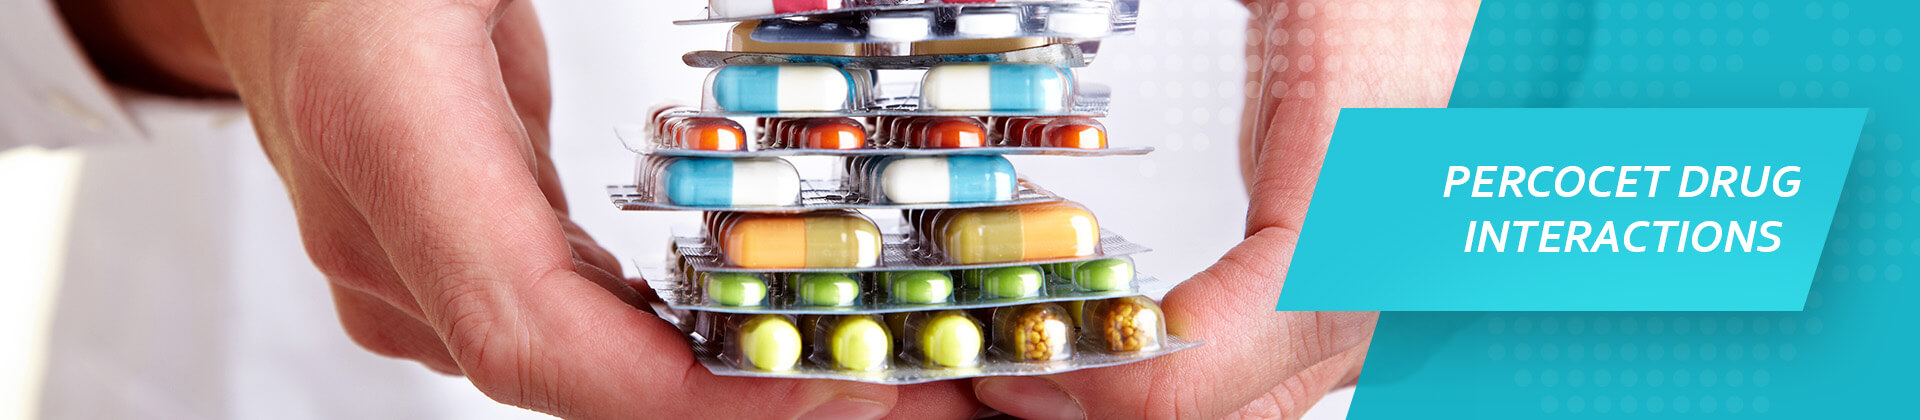 Percocet drug interactions